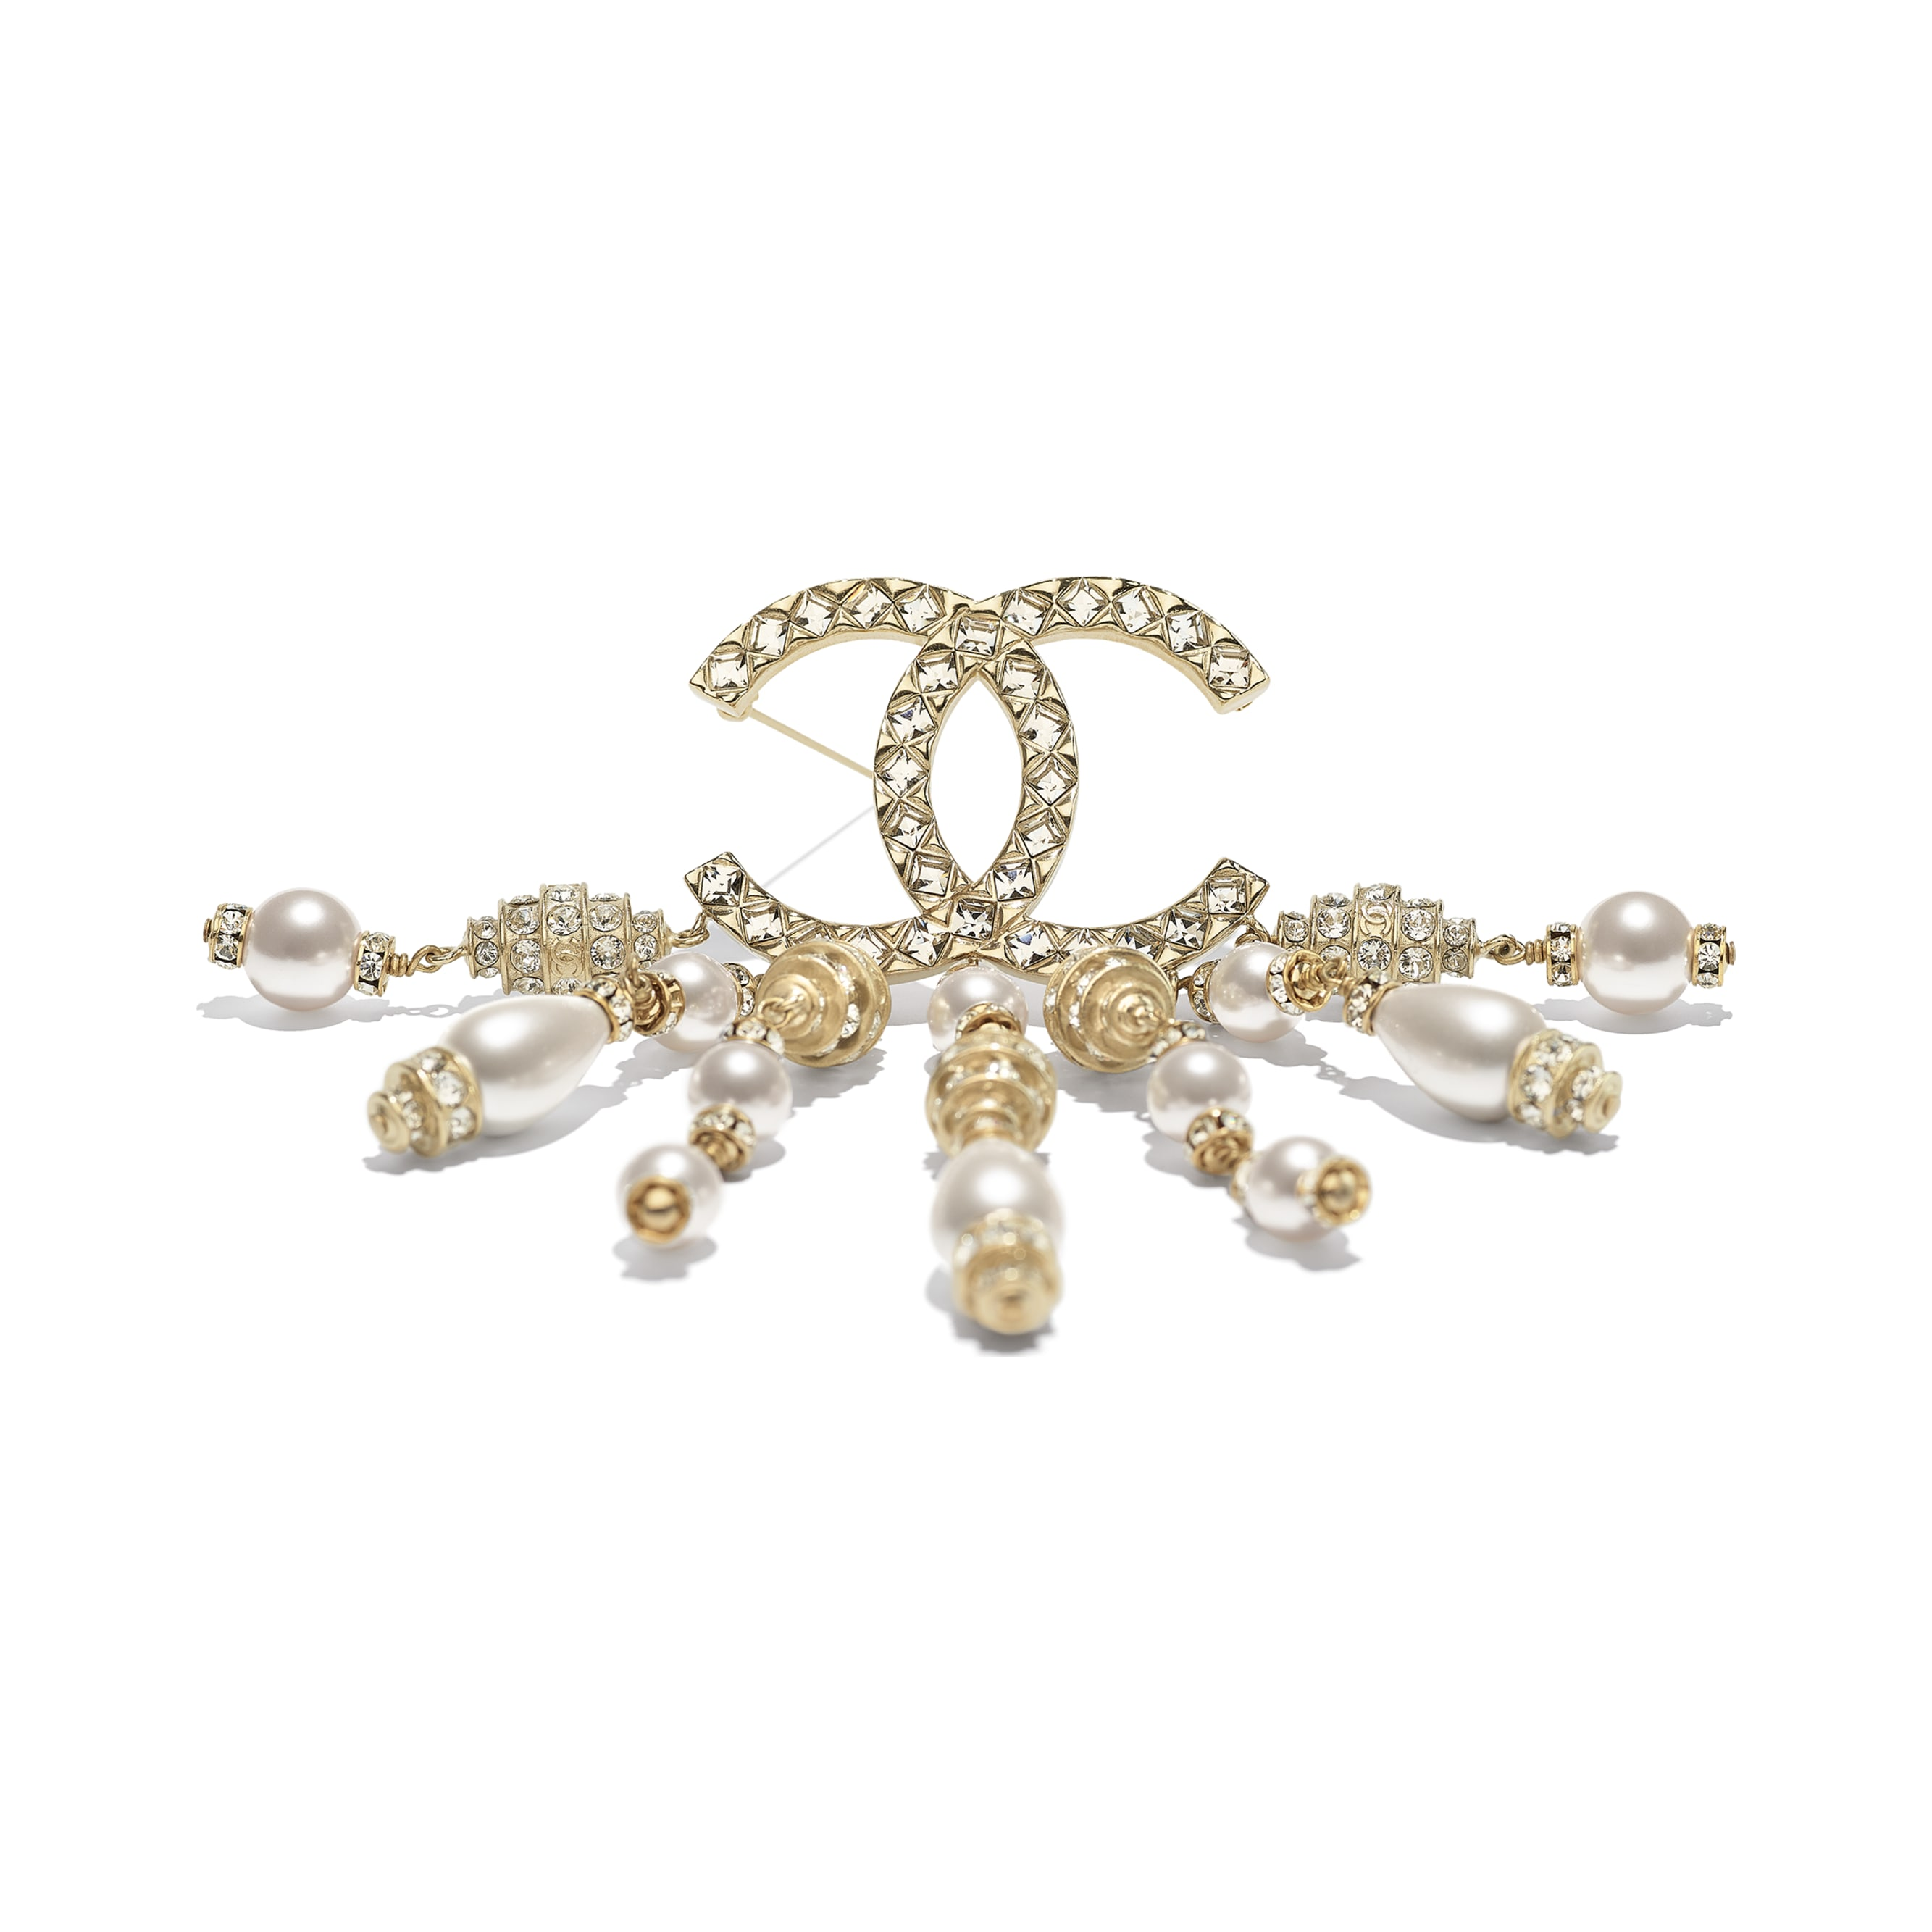 Brooch - Gold, Pearly White & Crystal - Resin, Glass Pearls, Strass & Metal - CHANEL - Alternative view - see standard sized version